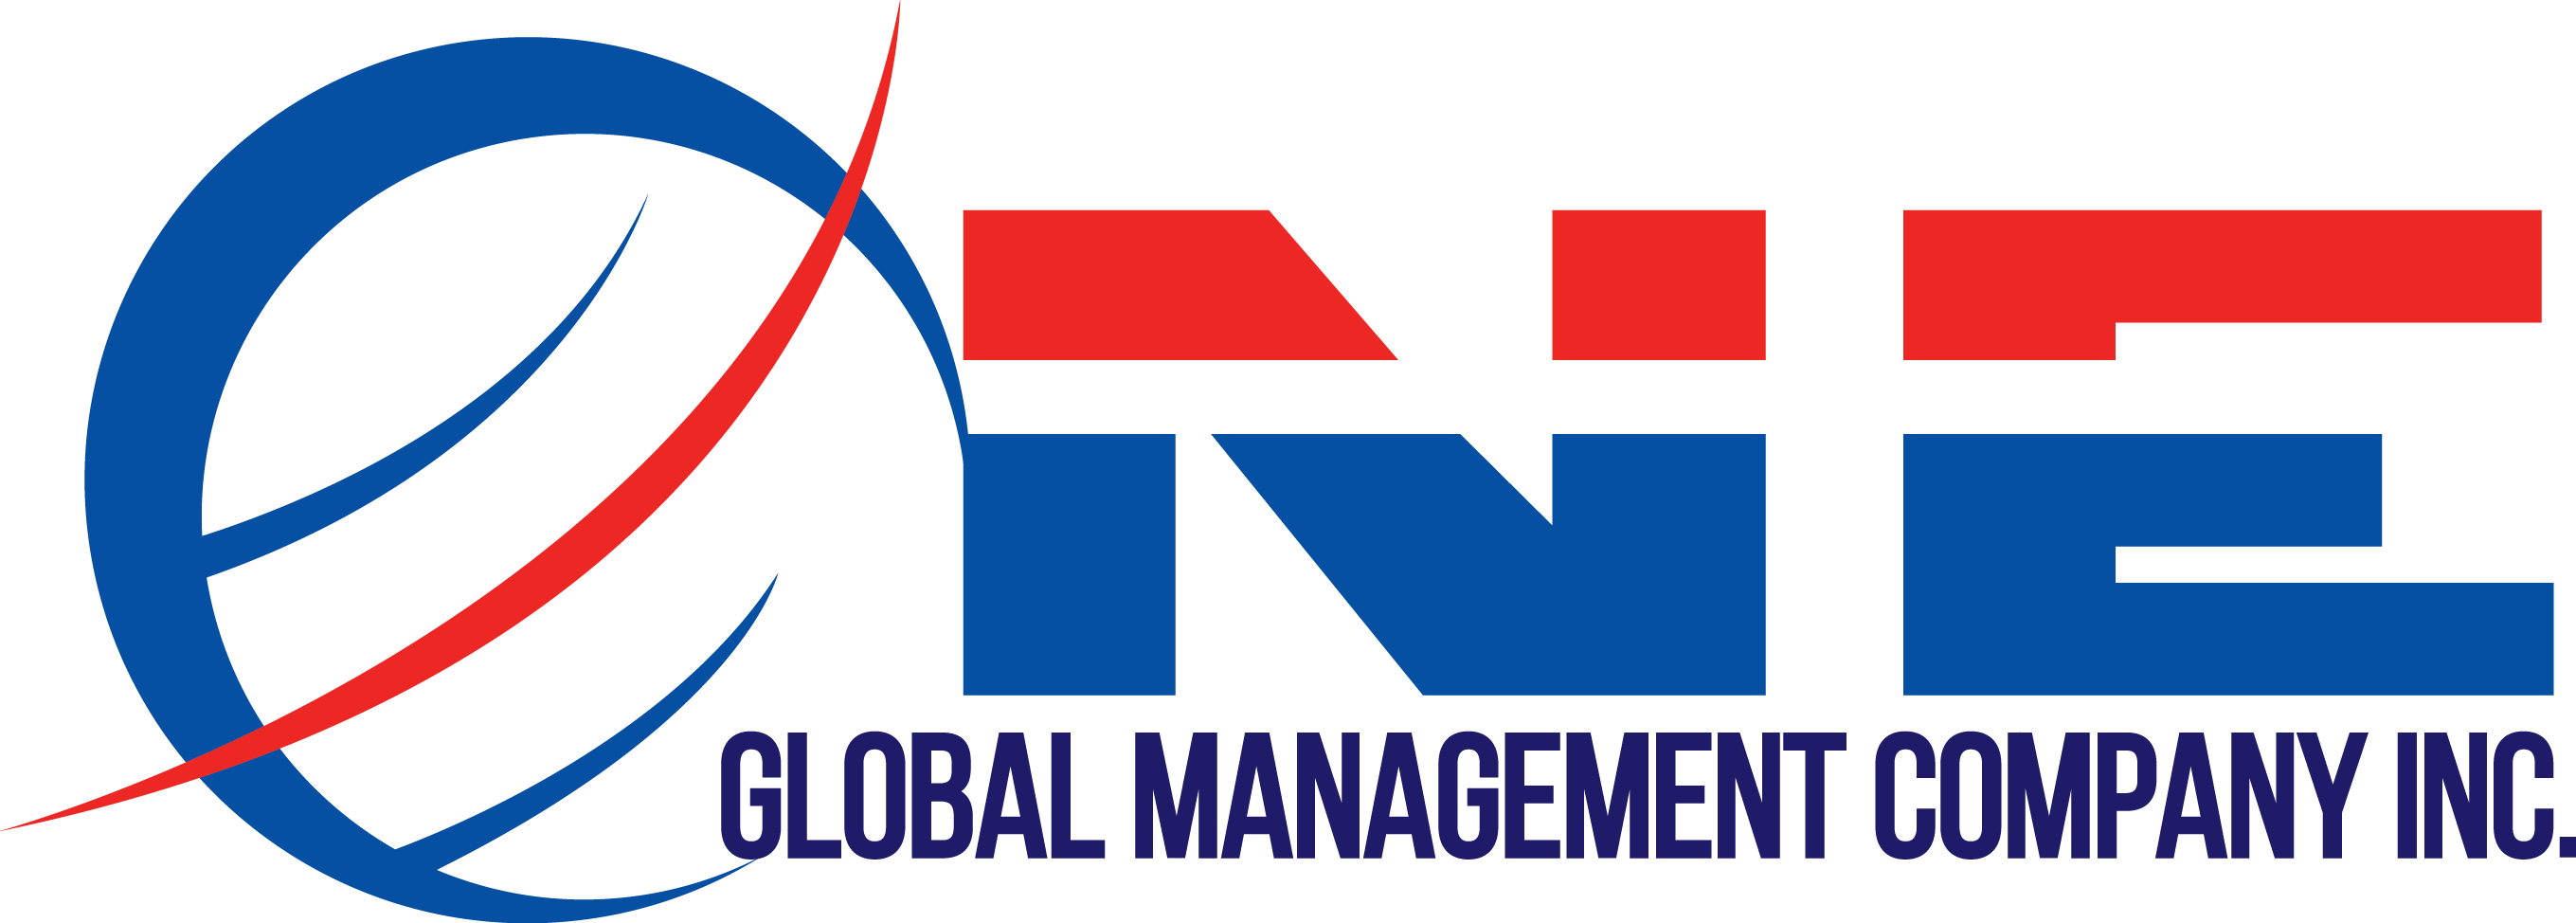 One Global Management